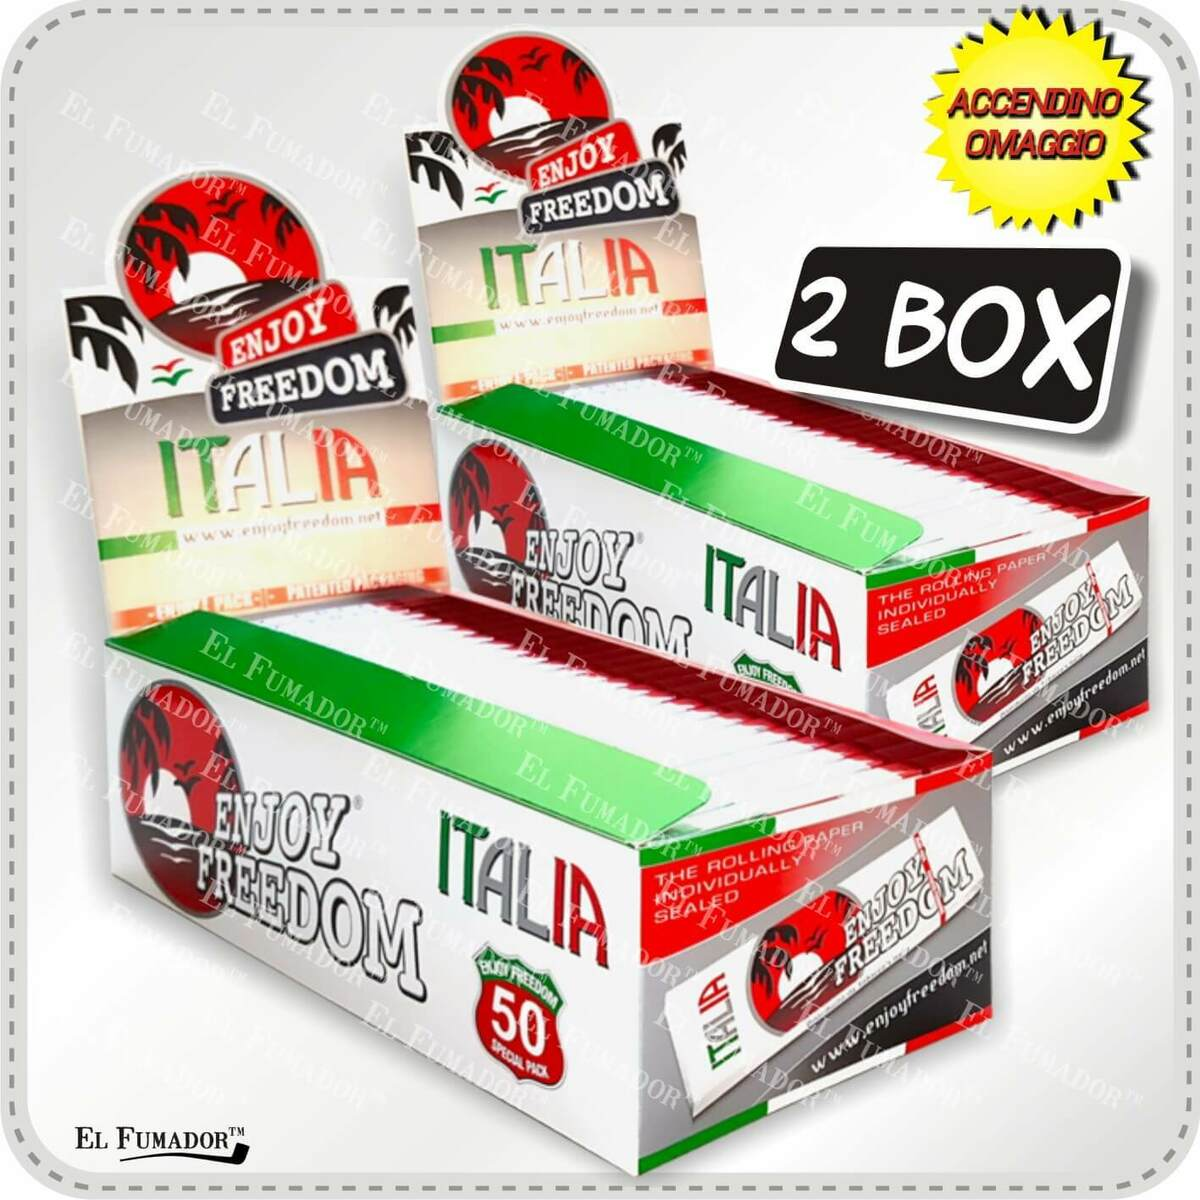 5000 cartine enjoy freedom italia corte 2 box 100 libretti bianche tipo a 